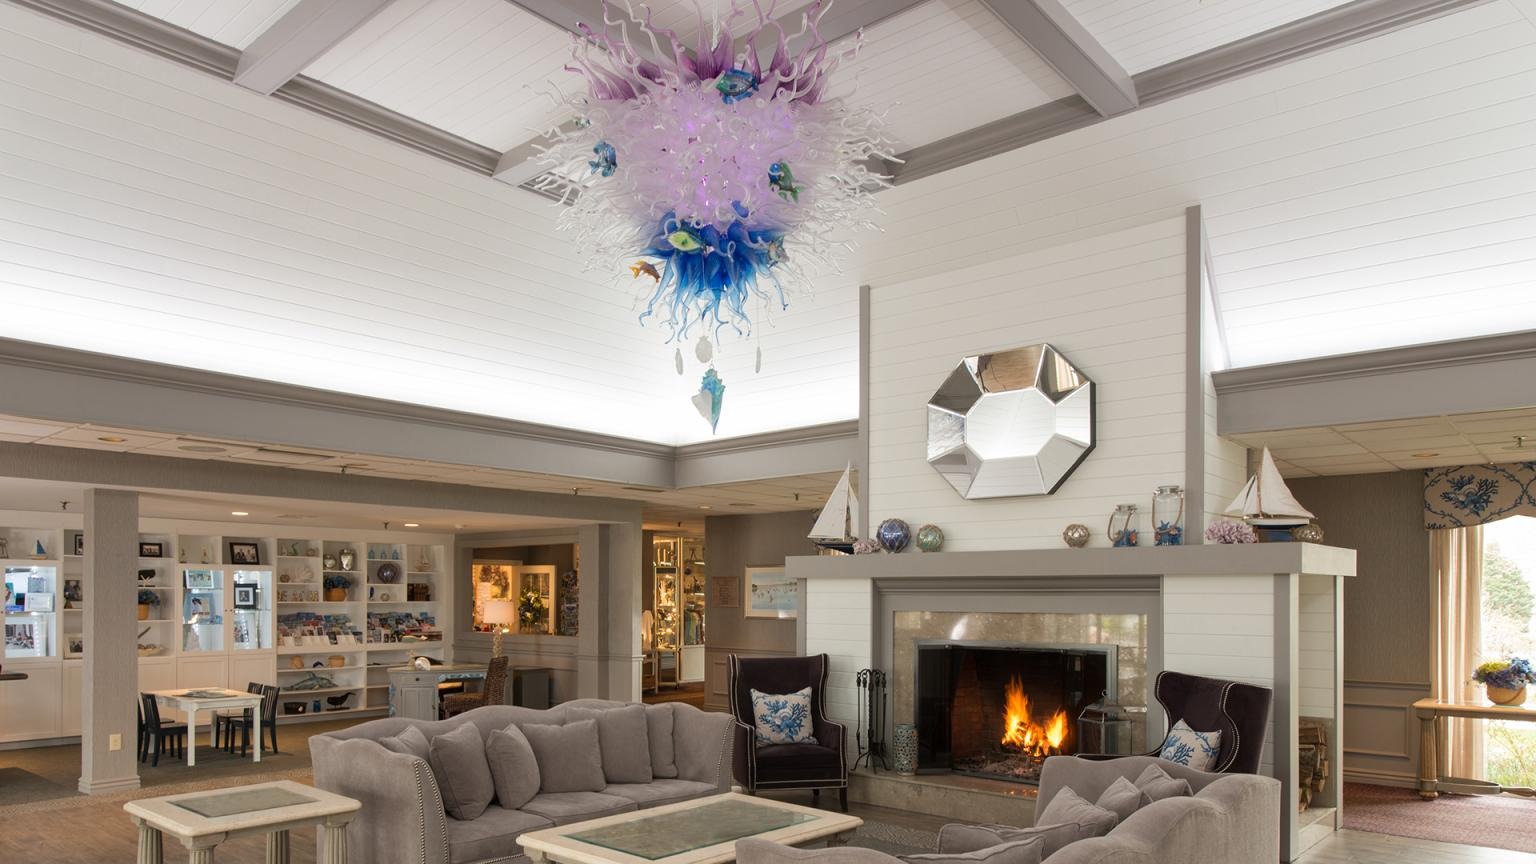 Cape Codder Lobby with one-of-a-kind Chandelier artwork